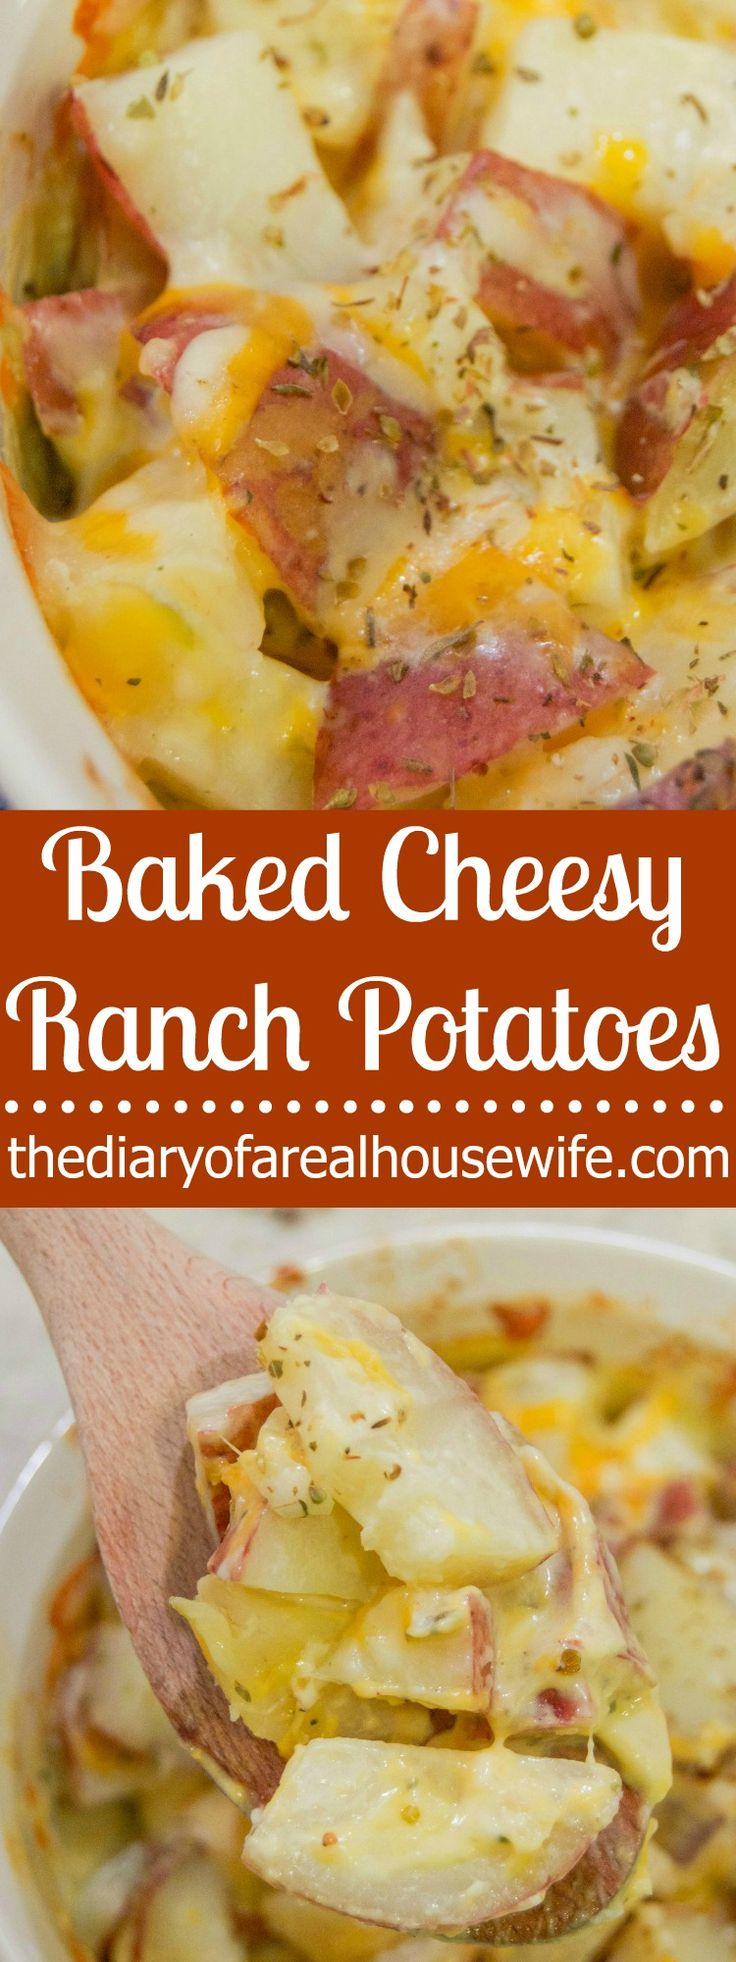 You are going to want to try this one asap! I made them for dinner last night, SO GOOD!! Baked Cheesy Ranch Potatoes, such a simple side dish recipe.